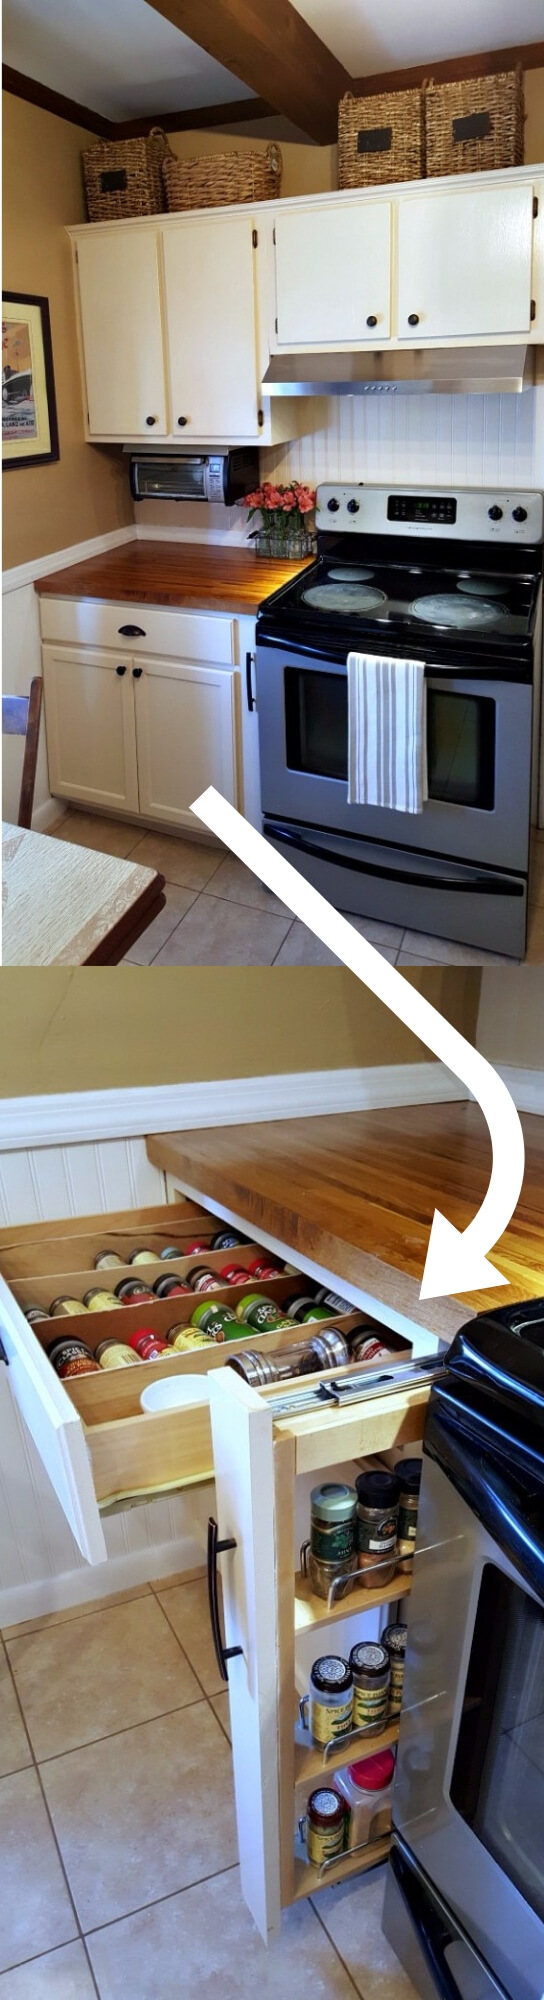 A pull out cabinet spice rackbetween the stove and the counter